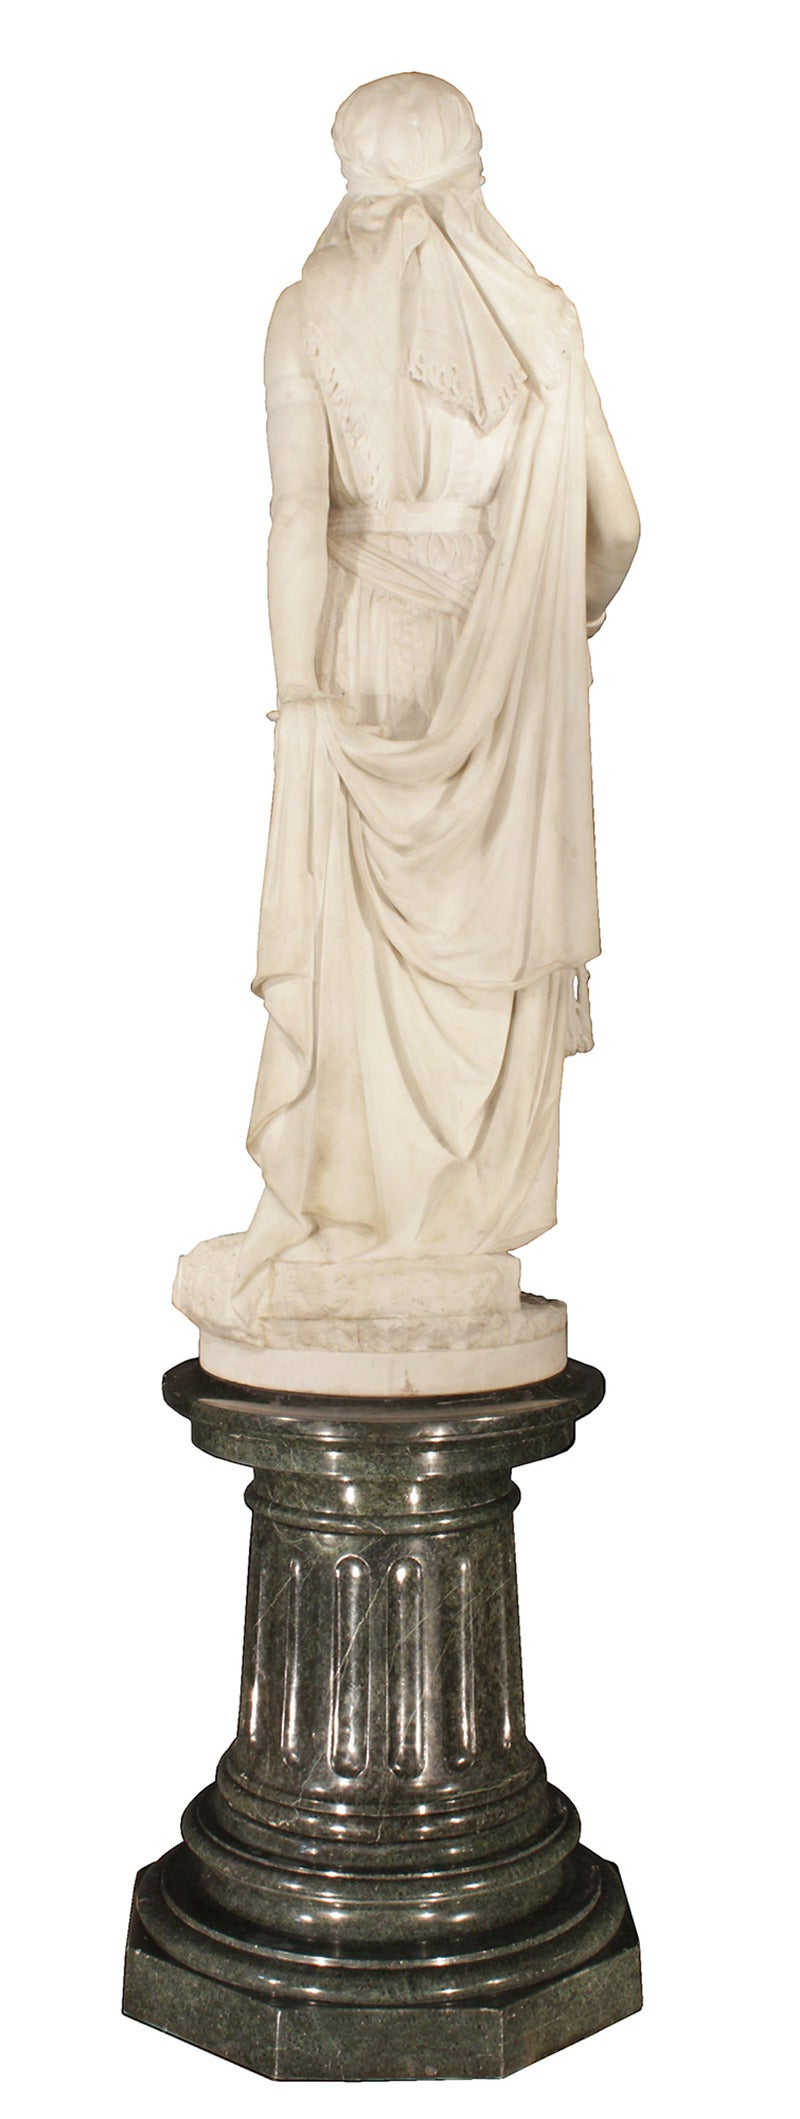 White Marble Statue : Th century solid white carrara marble statue of jael